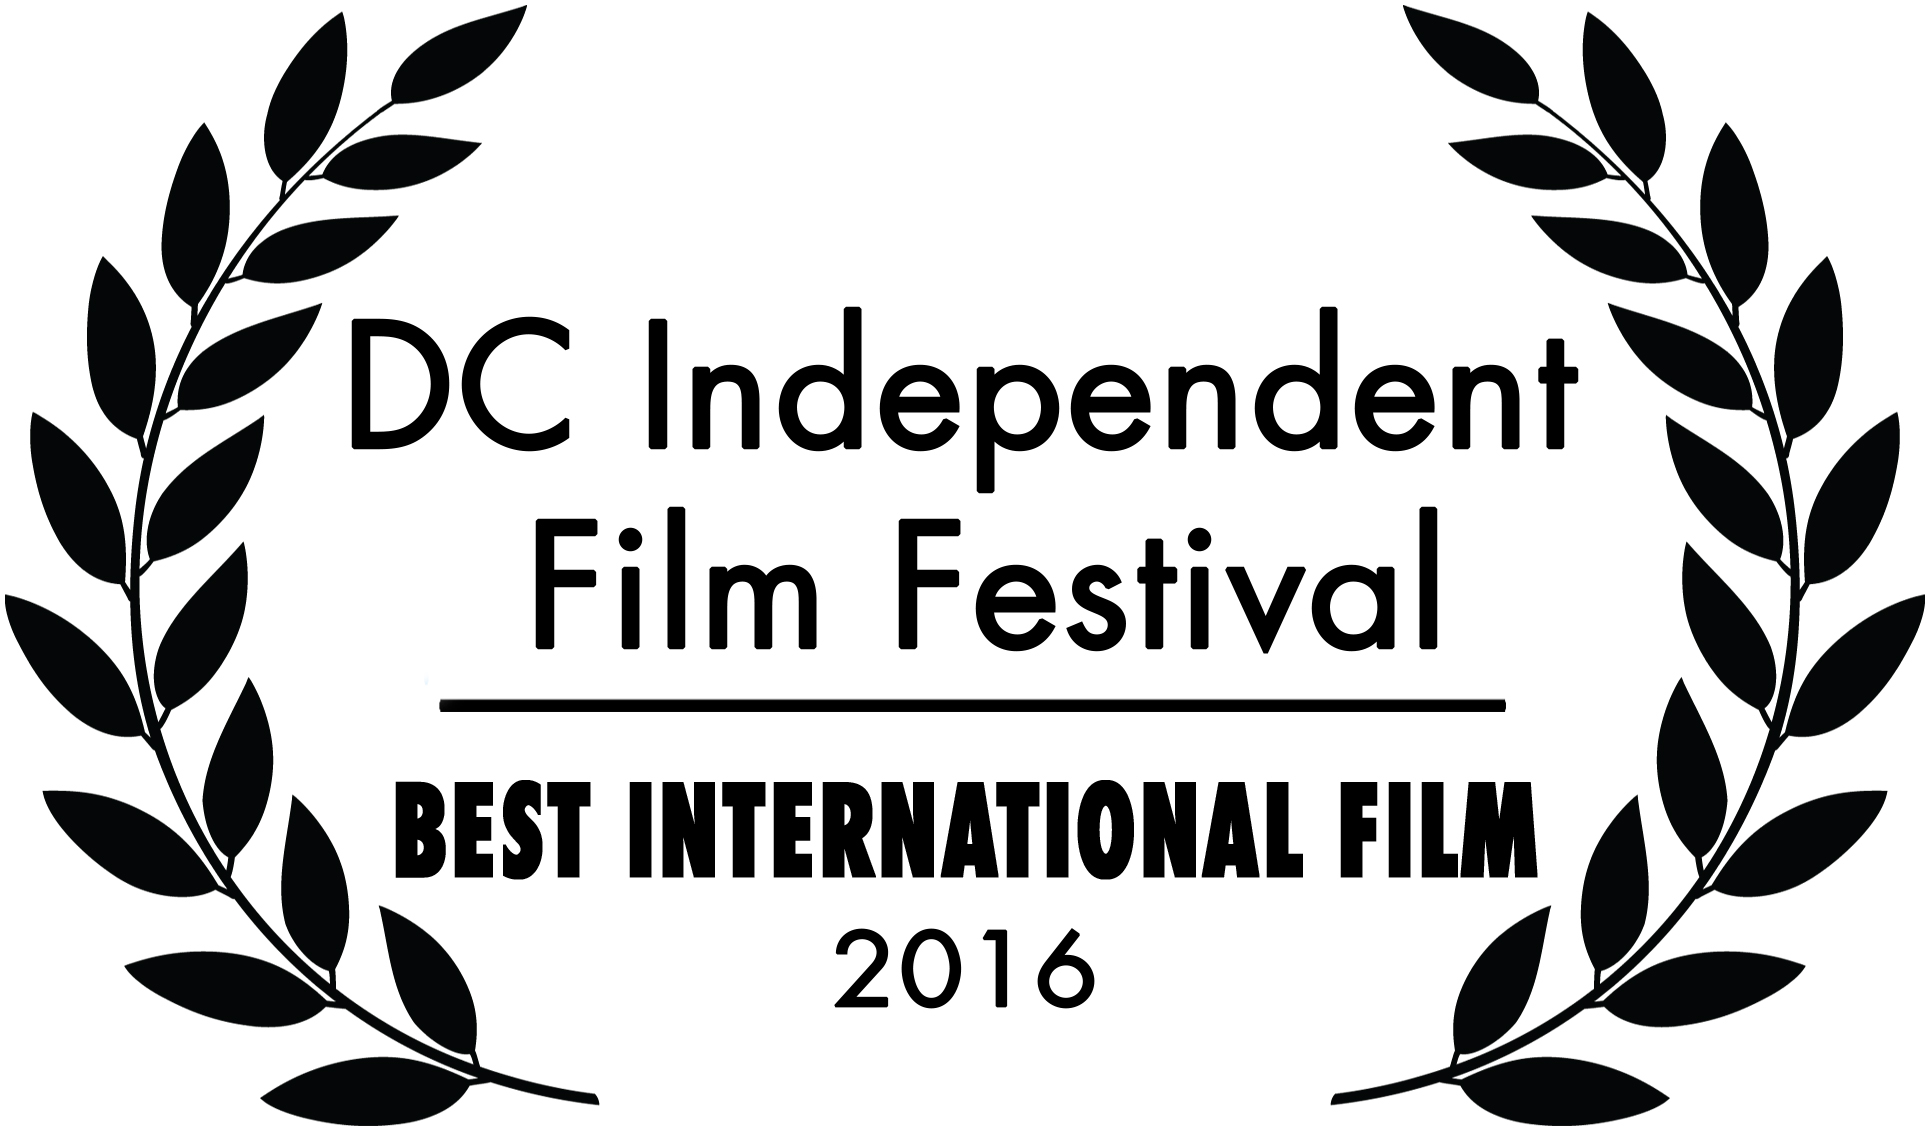 DCIFF_Laurel_BestInternationalFilm_2016